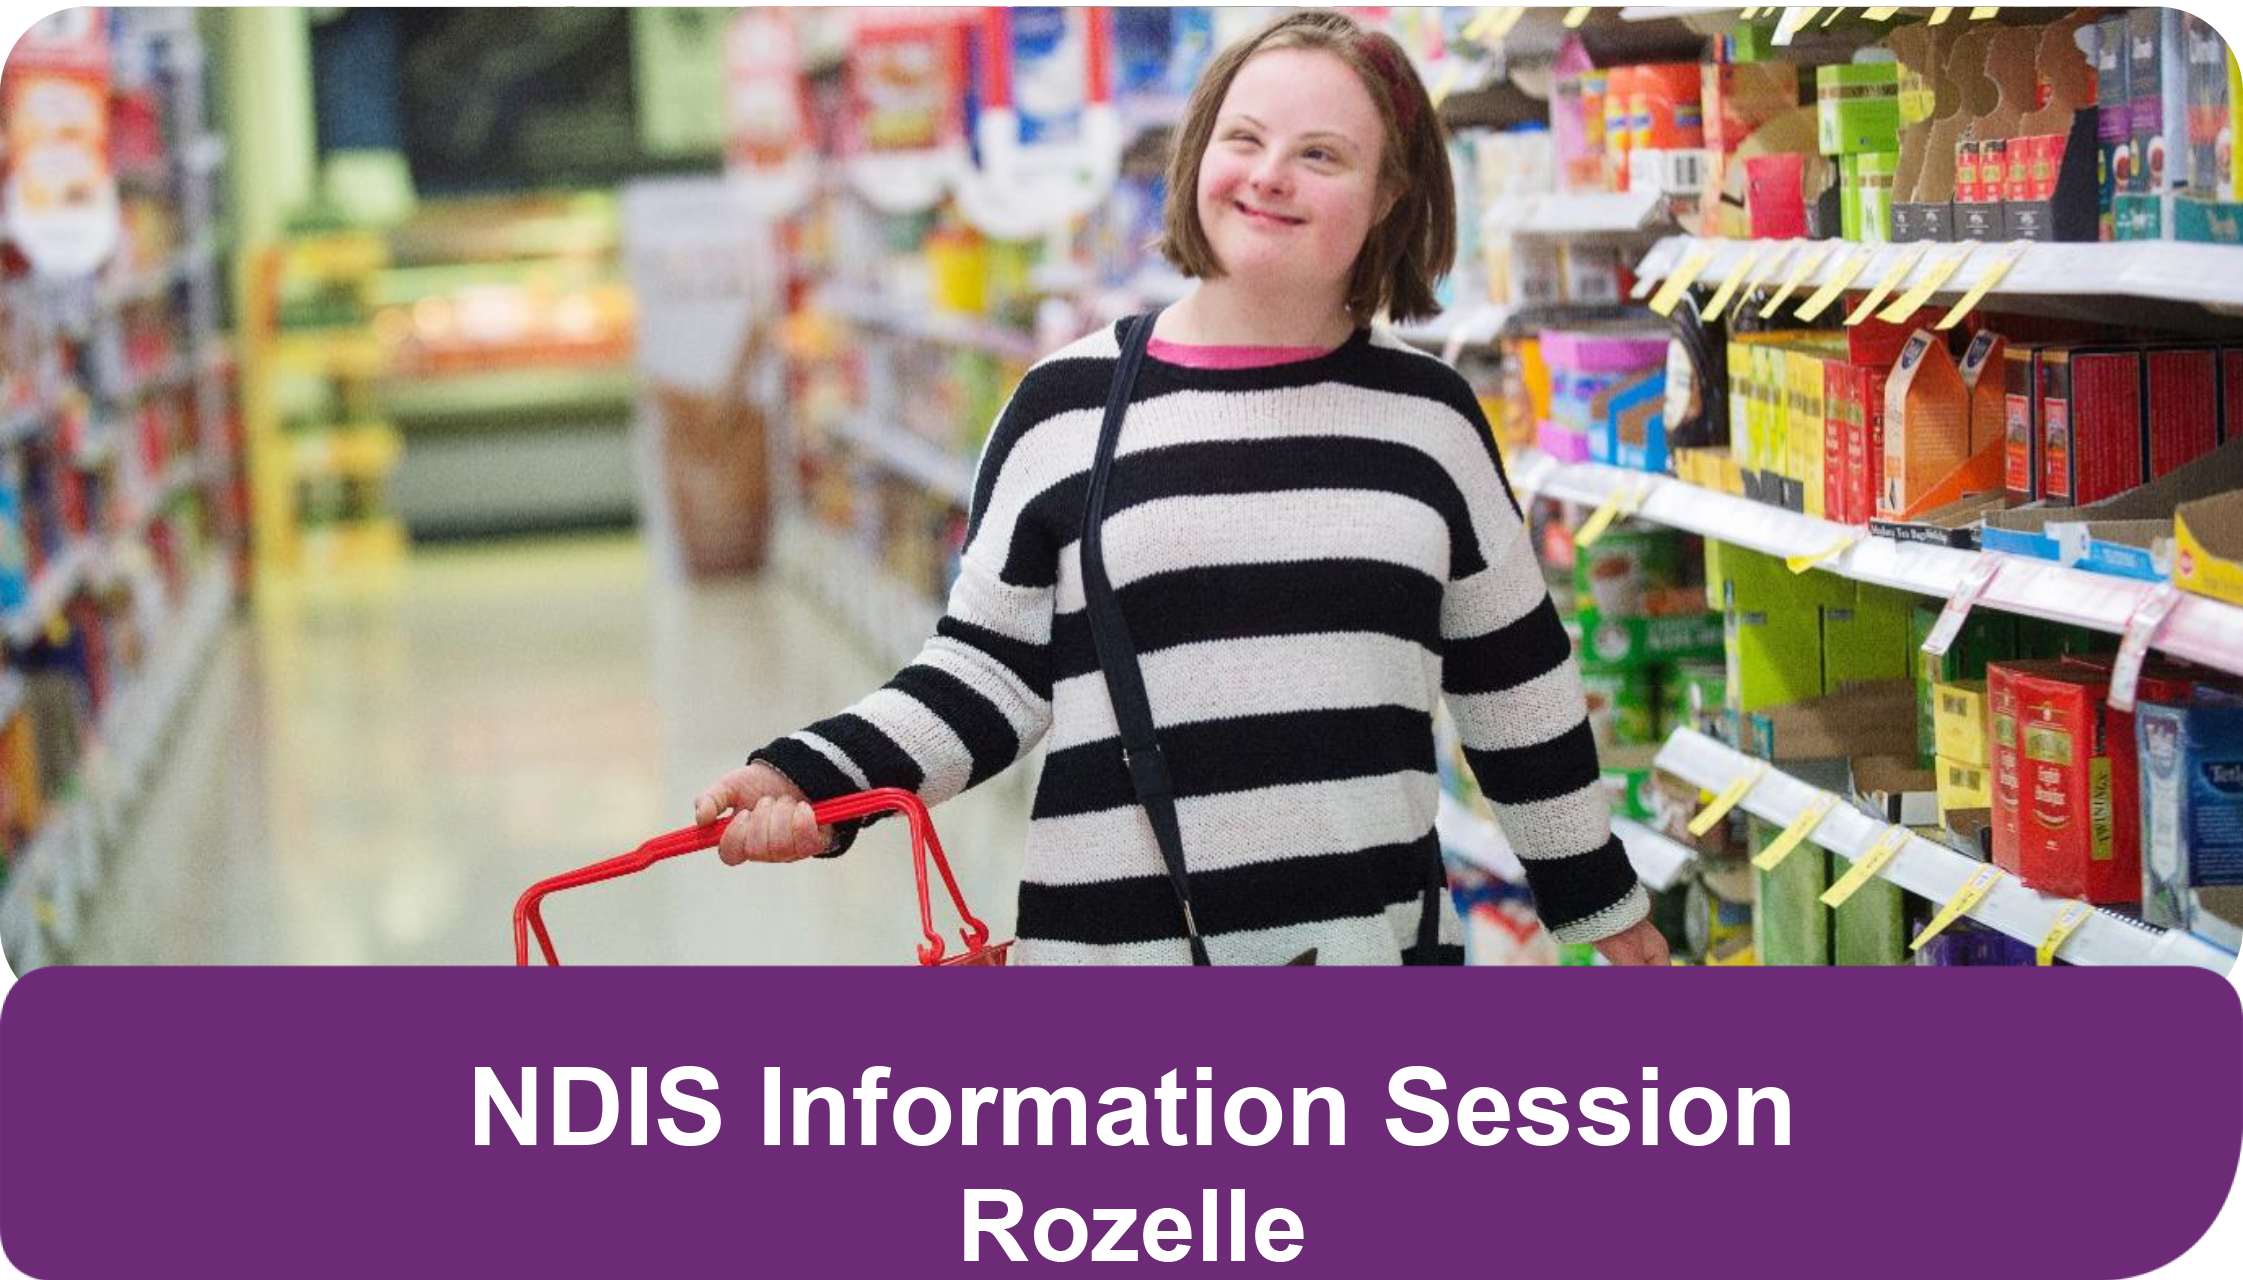 NDIS Information Session - Rozelle.png